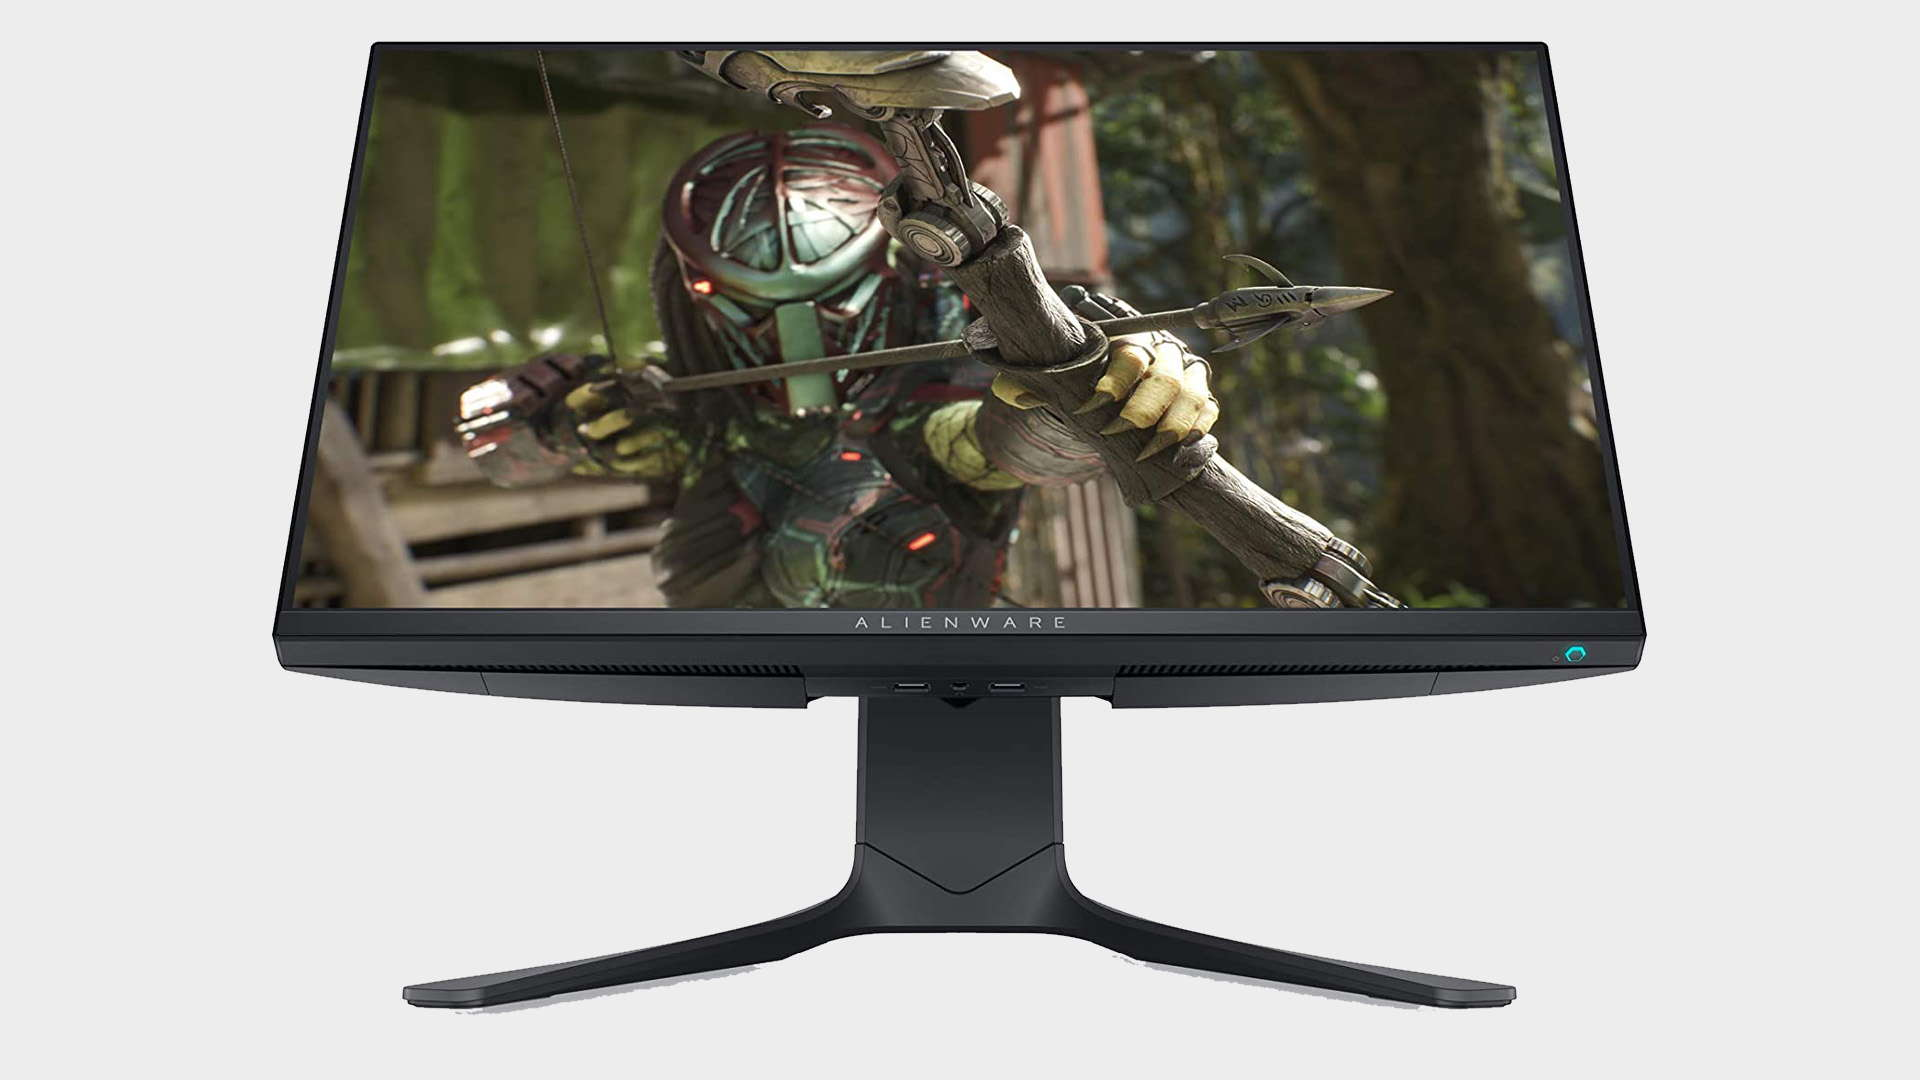 Alienware AW2521H high refresh rate gaming monitor